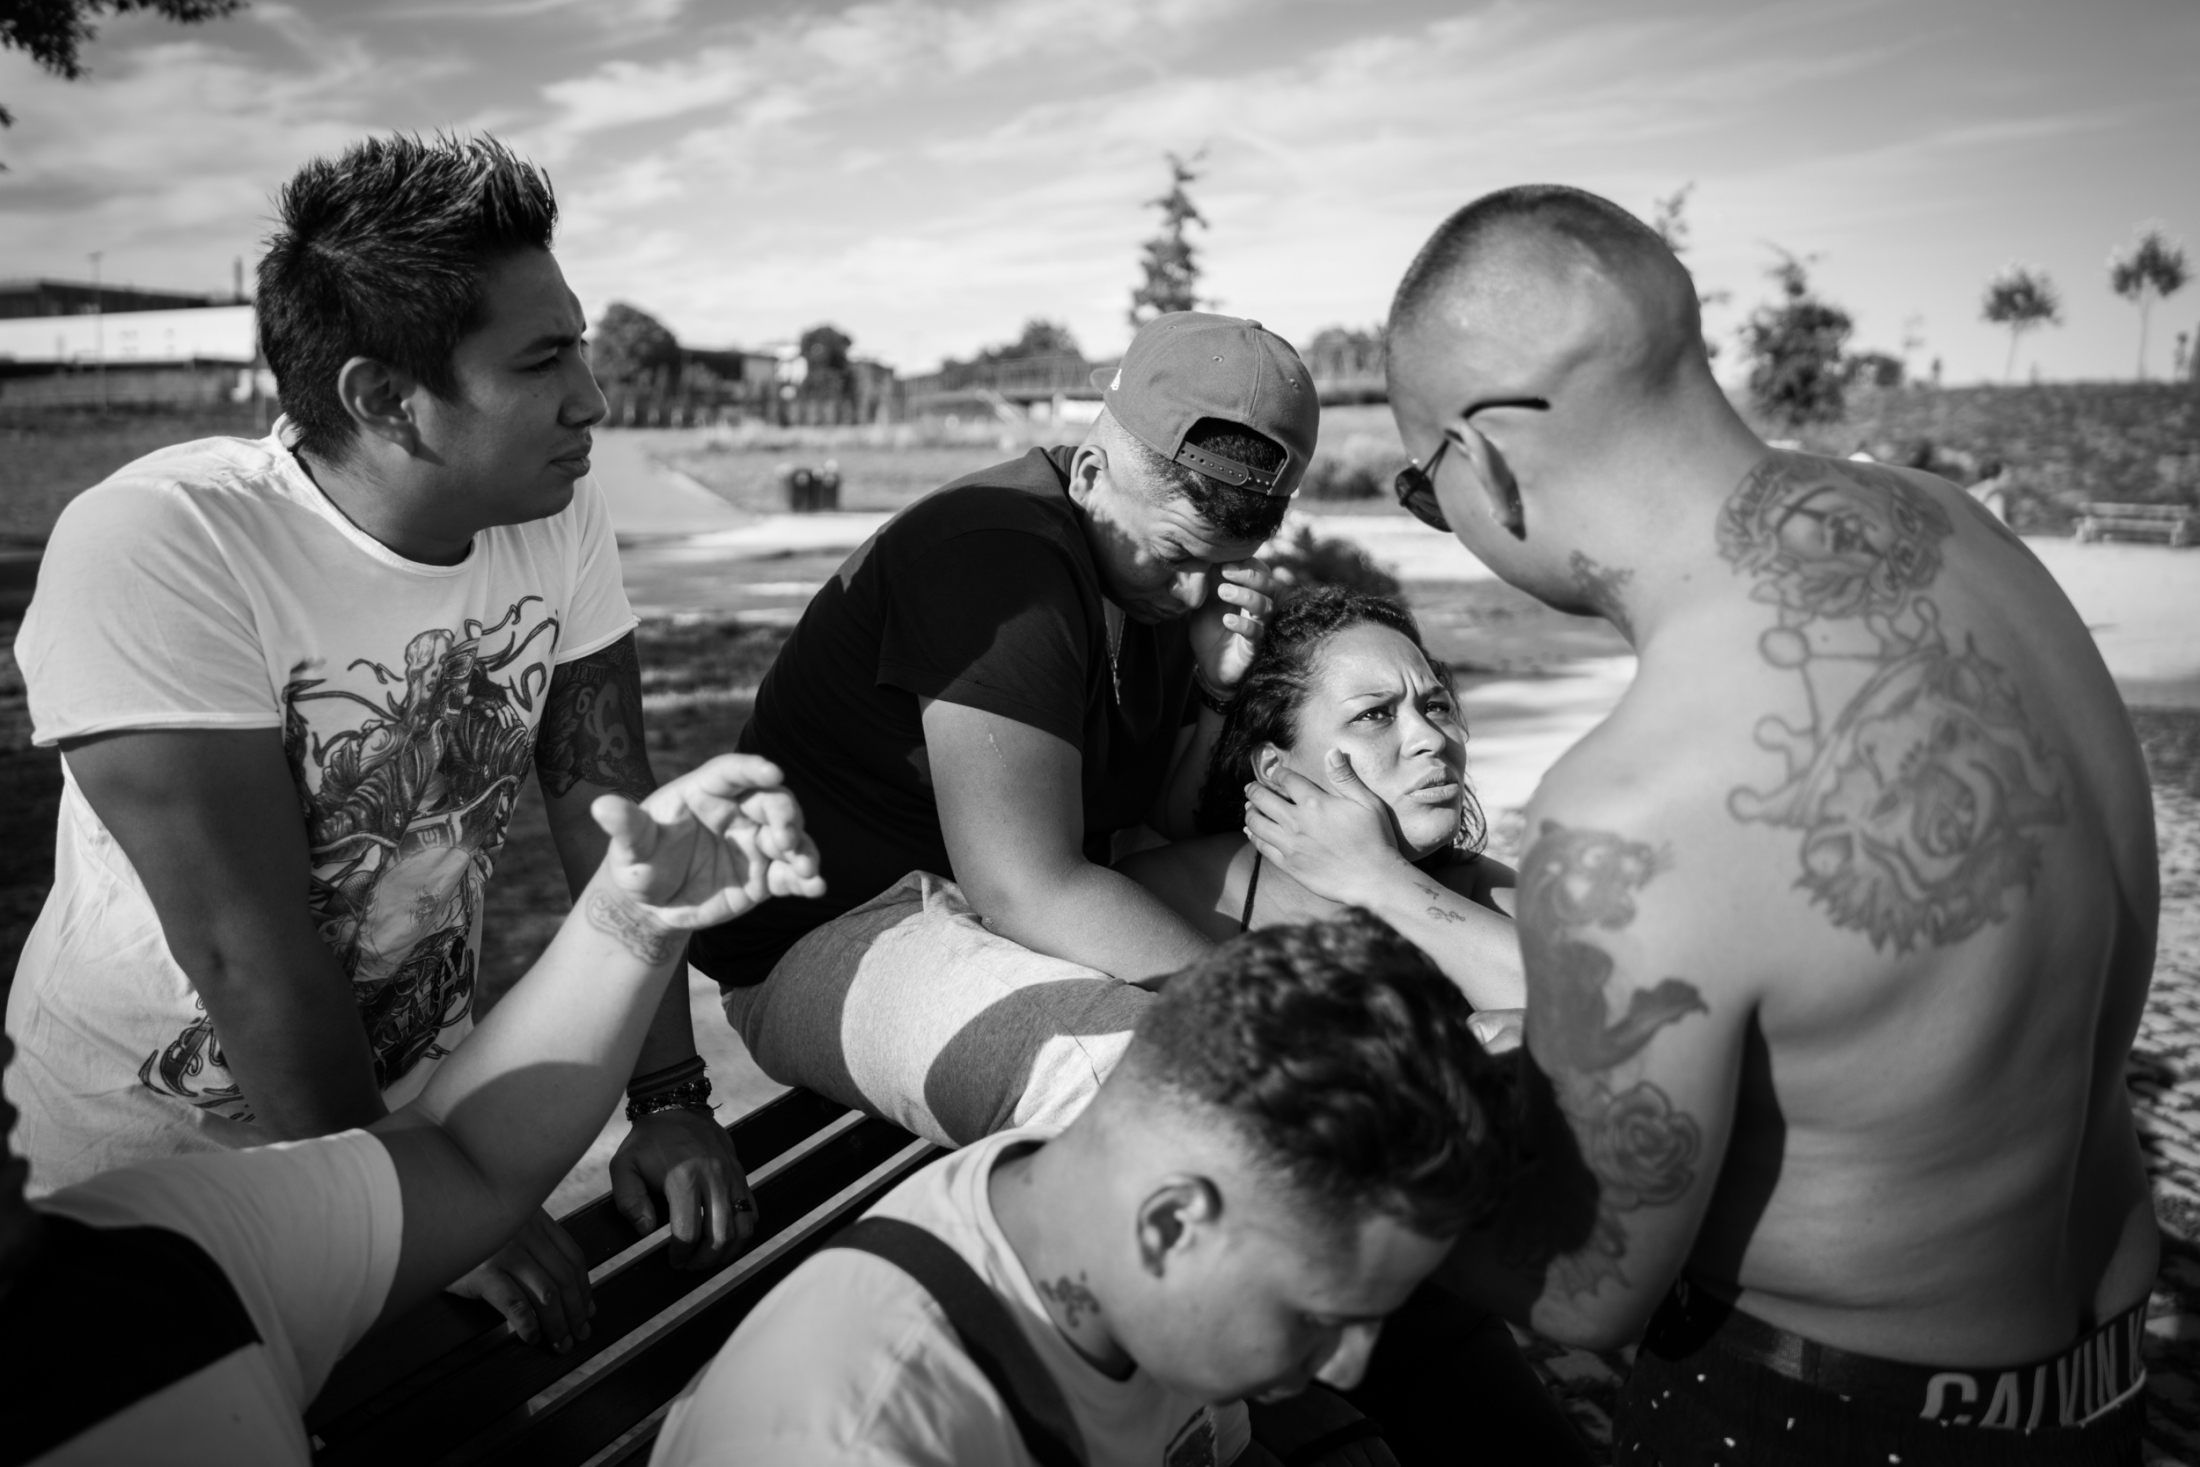 Latin Kings gather at a park during an important monthly meeting called Reunion del Sol (Meeting of the Sun), during the meeting they discuss new charges and missions they have to accomplish during the month, once the meeting is over they share food and drinks.